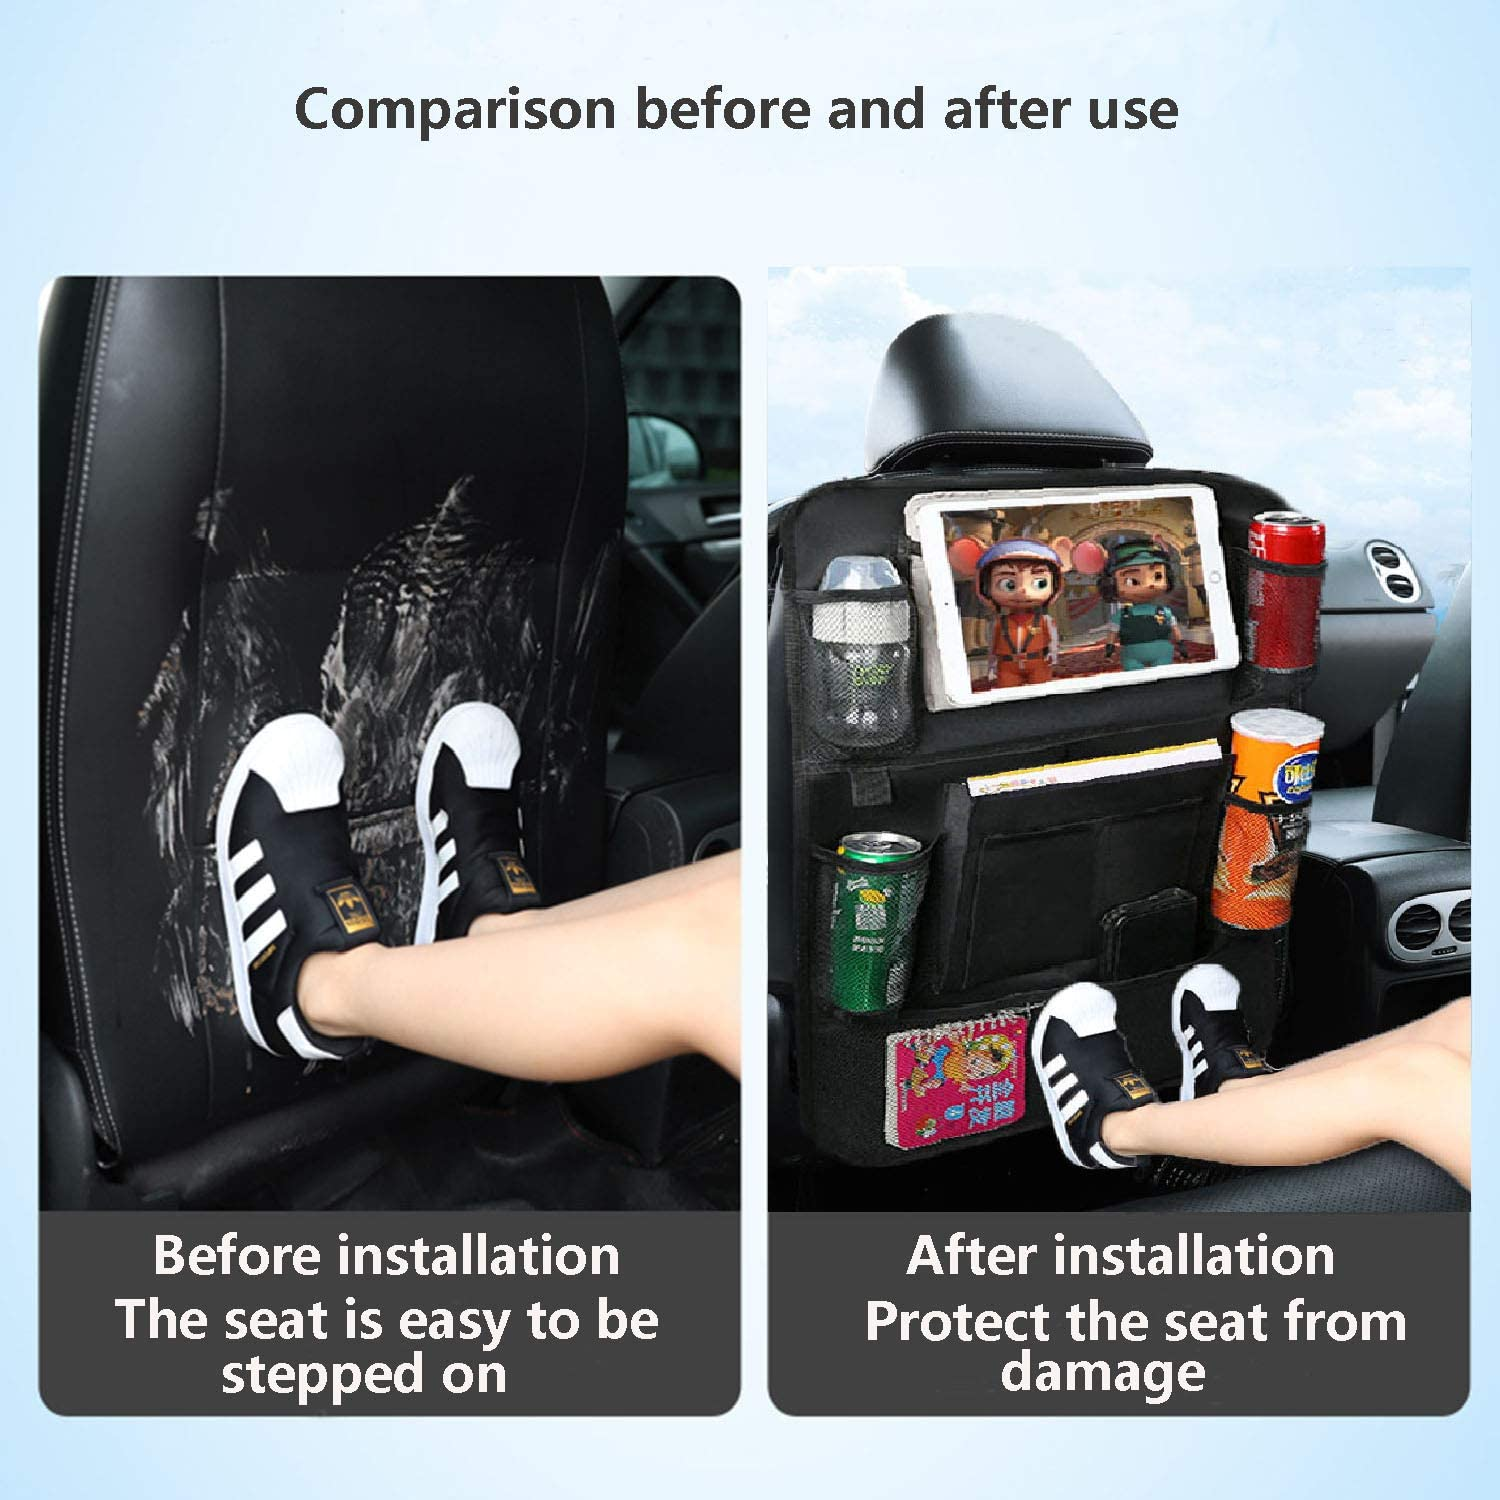 Momoco Car Back Seat Organiser,Seat Back Protectors,Waterproof Kick Mats with Car Tablet Holder and Multi Pockets /& 1 Car Cleaning Towel,for Anti-Kick and Storage in The Rear Seat of A Car(2 Packs)